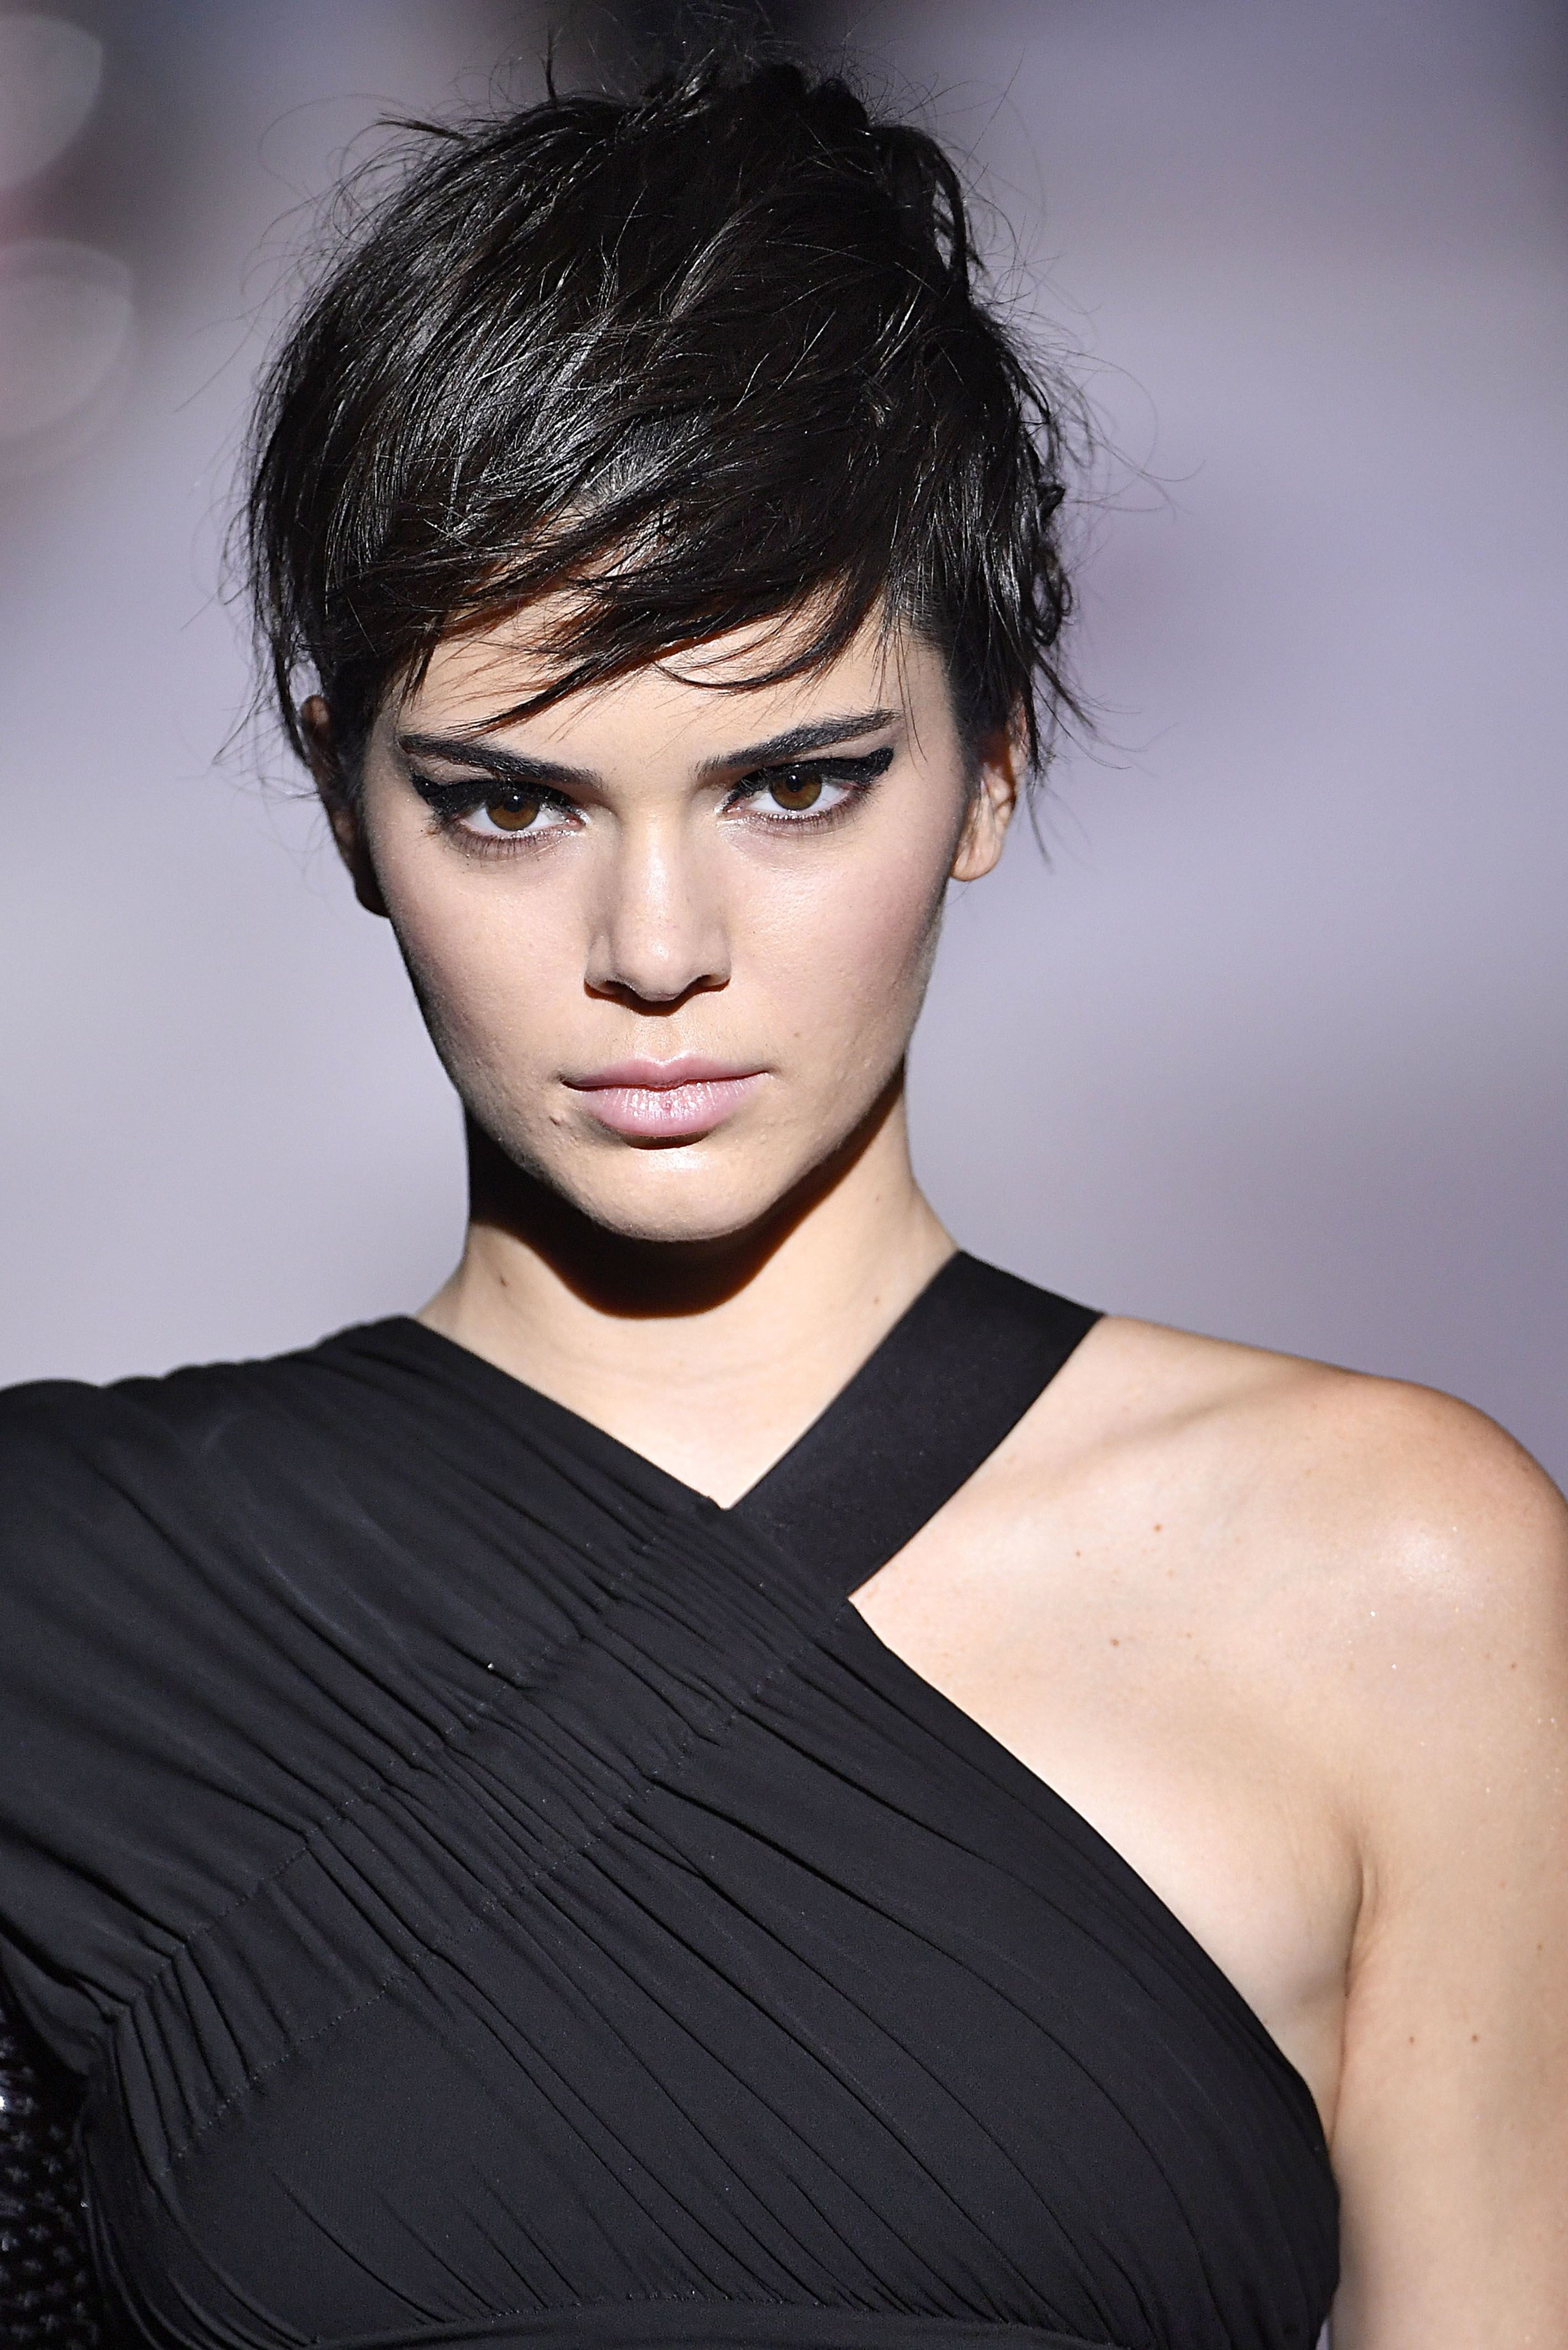 Kendall Jenner Channeled Kris Jenner With A Faux Pixie At The Tom Inside Kris Jenner Short Hairstyles (View 11 of 25)